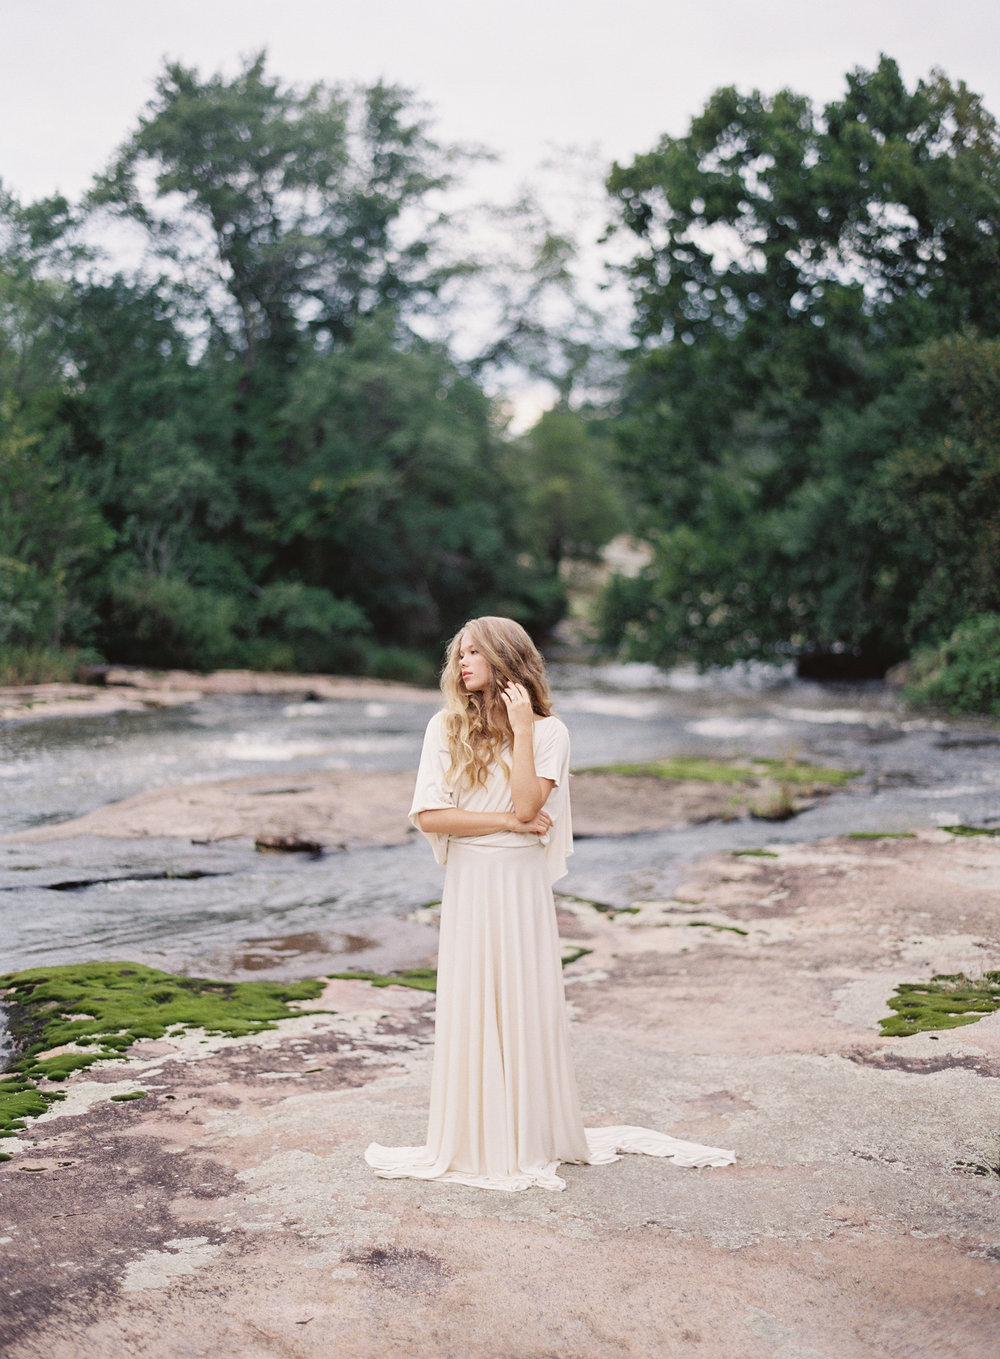 Autumn Wedding Inspiration at the Mill at Fine Creek by Richmond Virginia Wedding Planner East Made Event Company and Michael and Carina Photography67.jpg